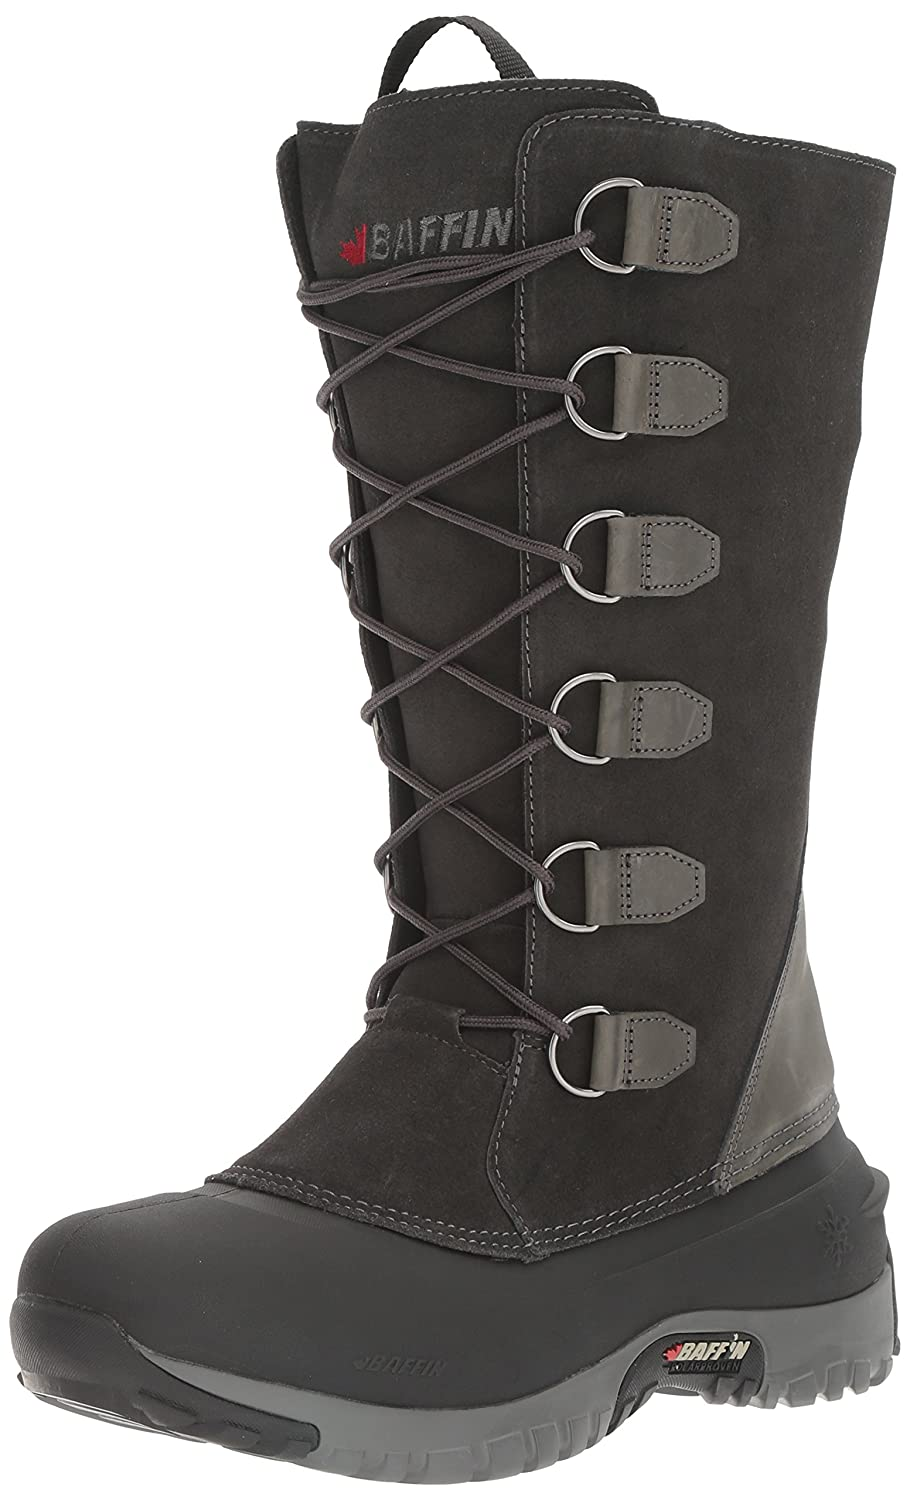 Baffin Women's Coco Insulated Suede Winter Boot B00HNTP60K 7 B(M) US|Charcoal